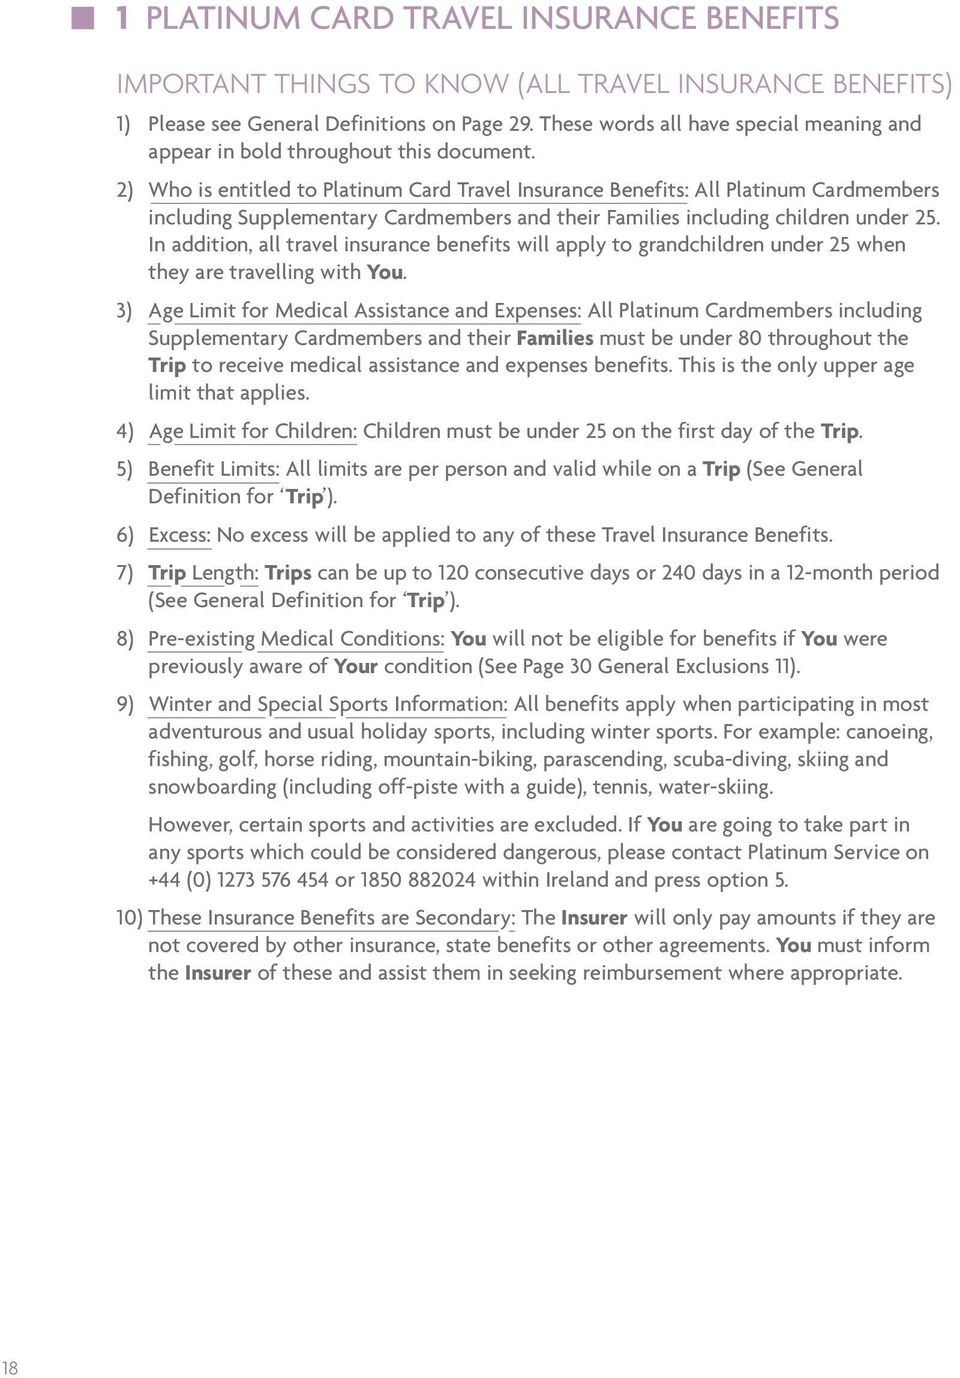 2) Who is entitled to Platinum Card Travel Insurance Benefits: All Platinum Cardmembers including Supplementary Cardmembers and their Families including children under 25.